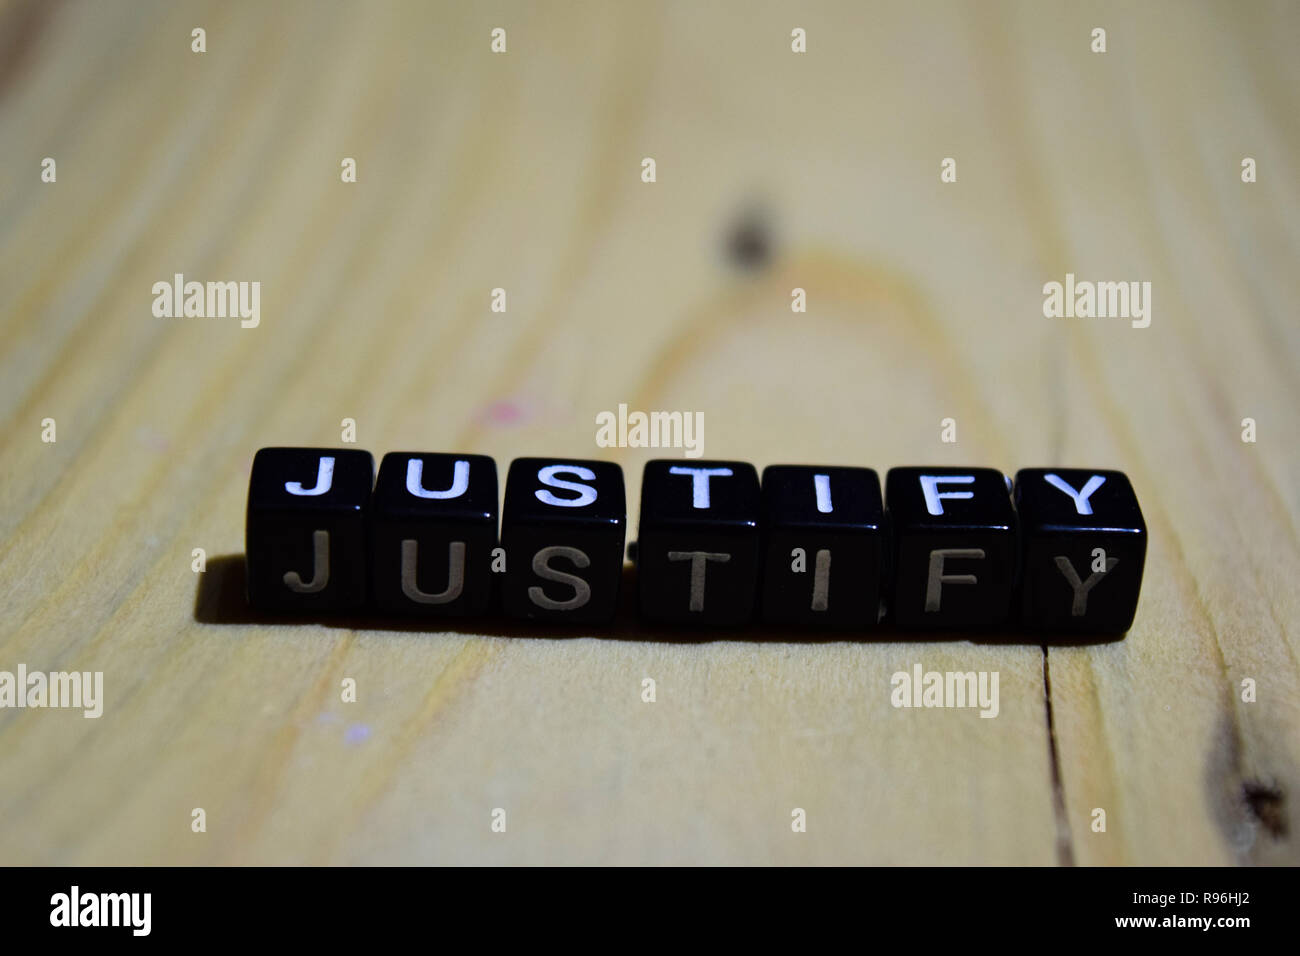 Justify written on wooden blocks. Inspiration and motivation concepts. Cross processed image on Wooden Background - Stock Image